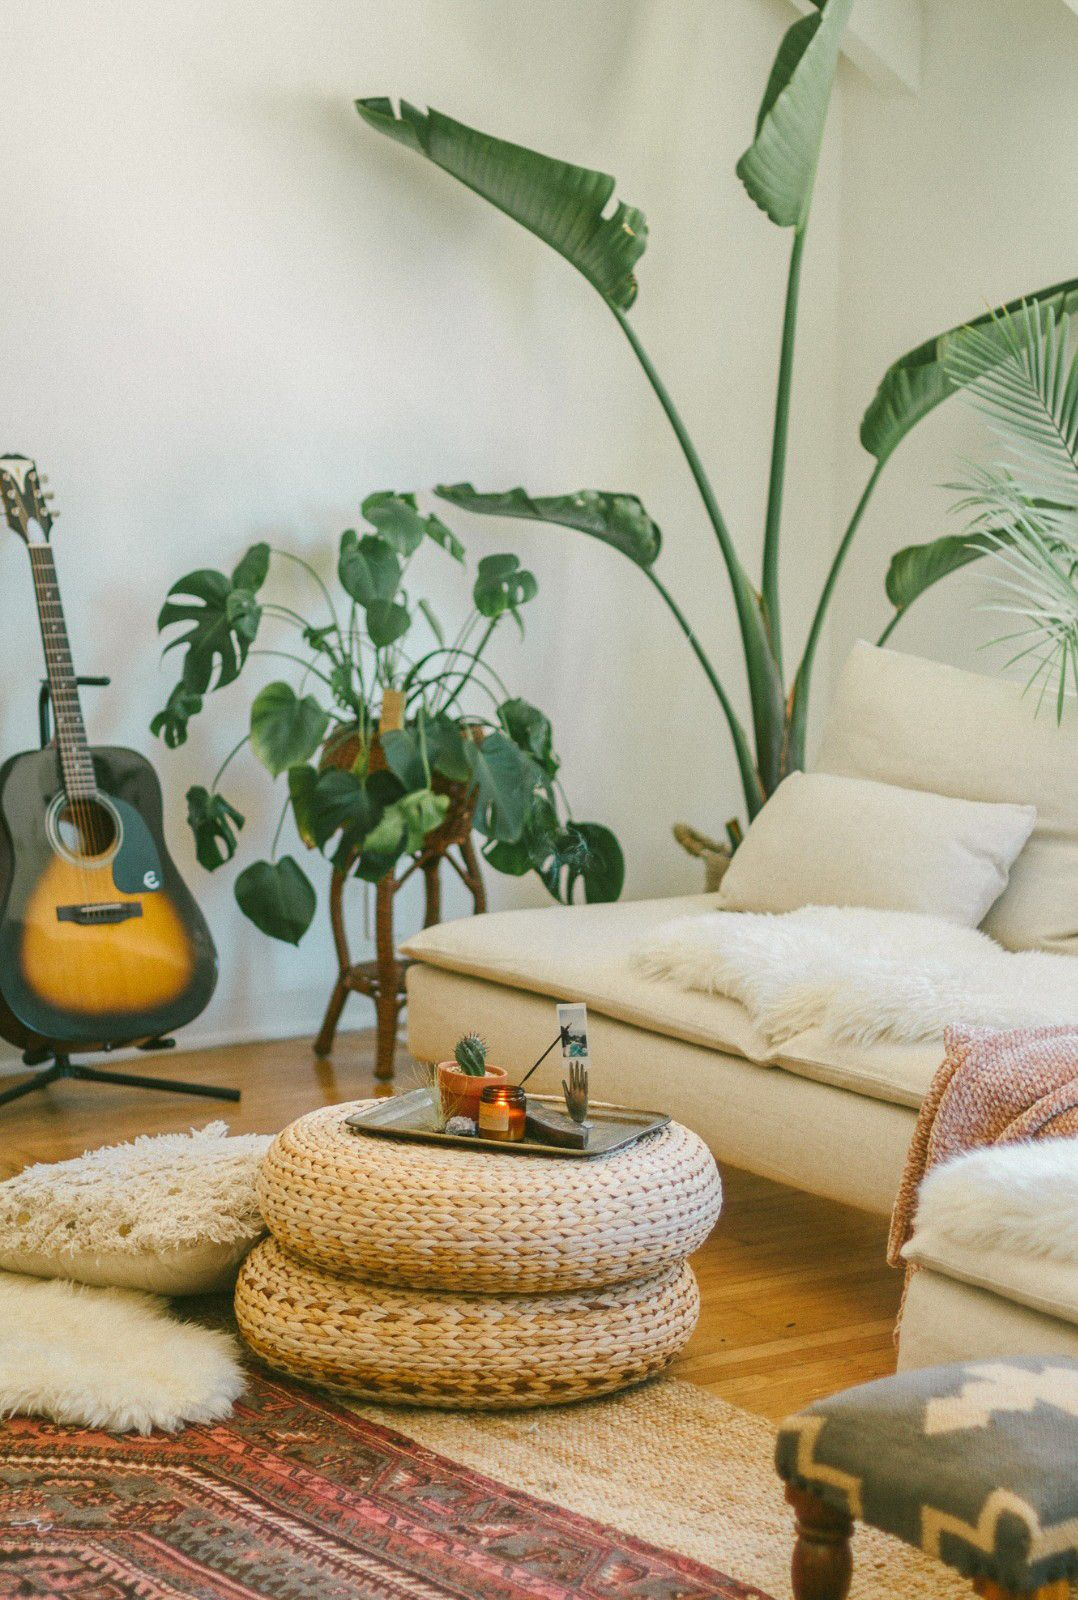 Boho Vibes and Lots of Houseplants